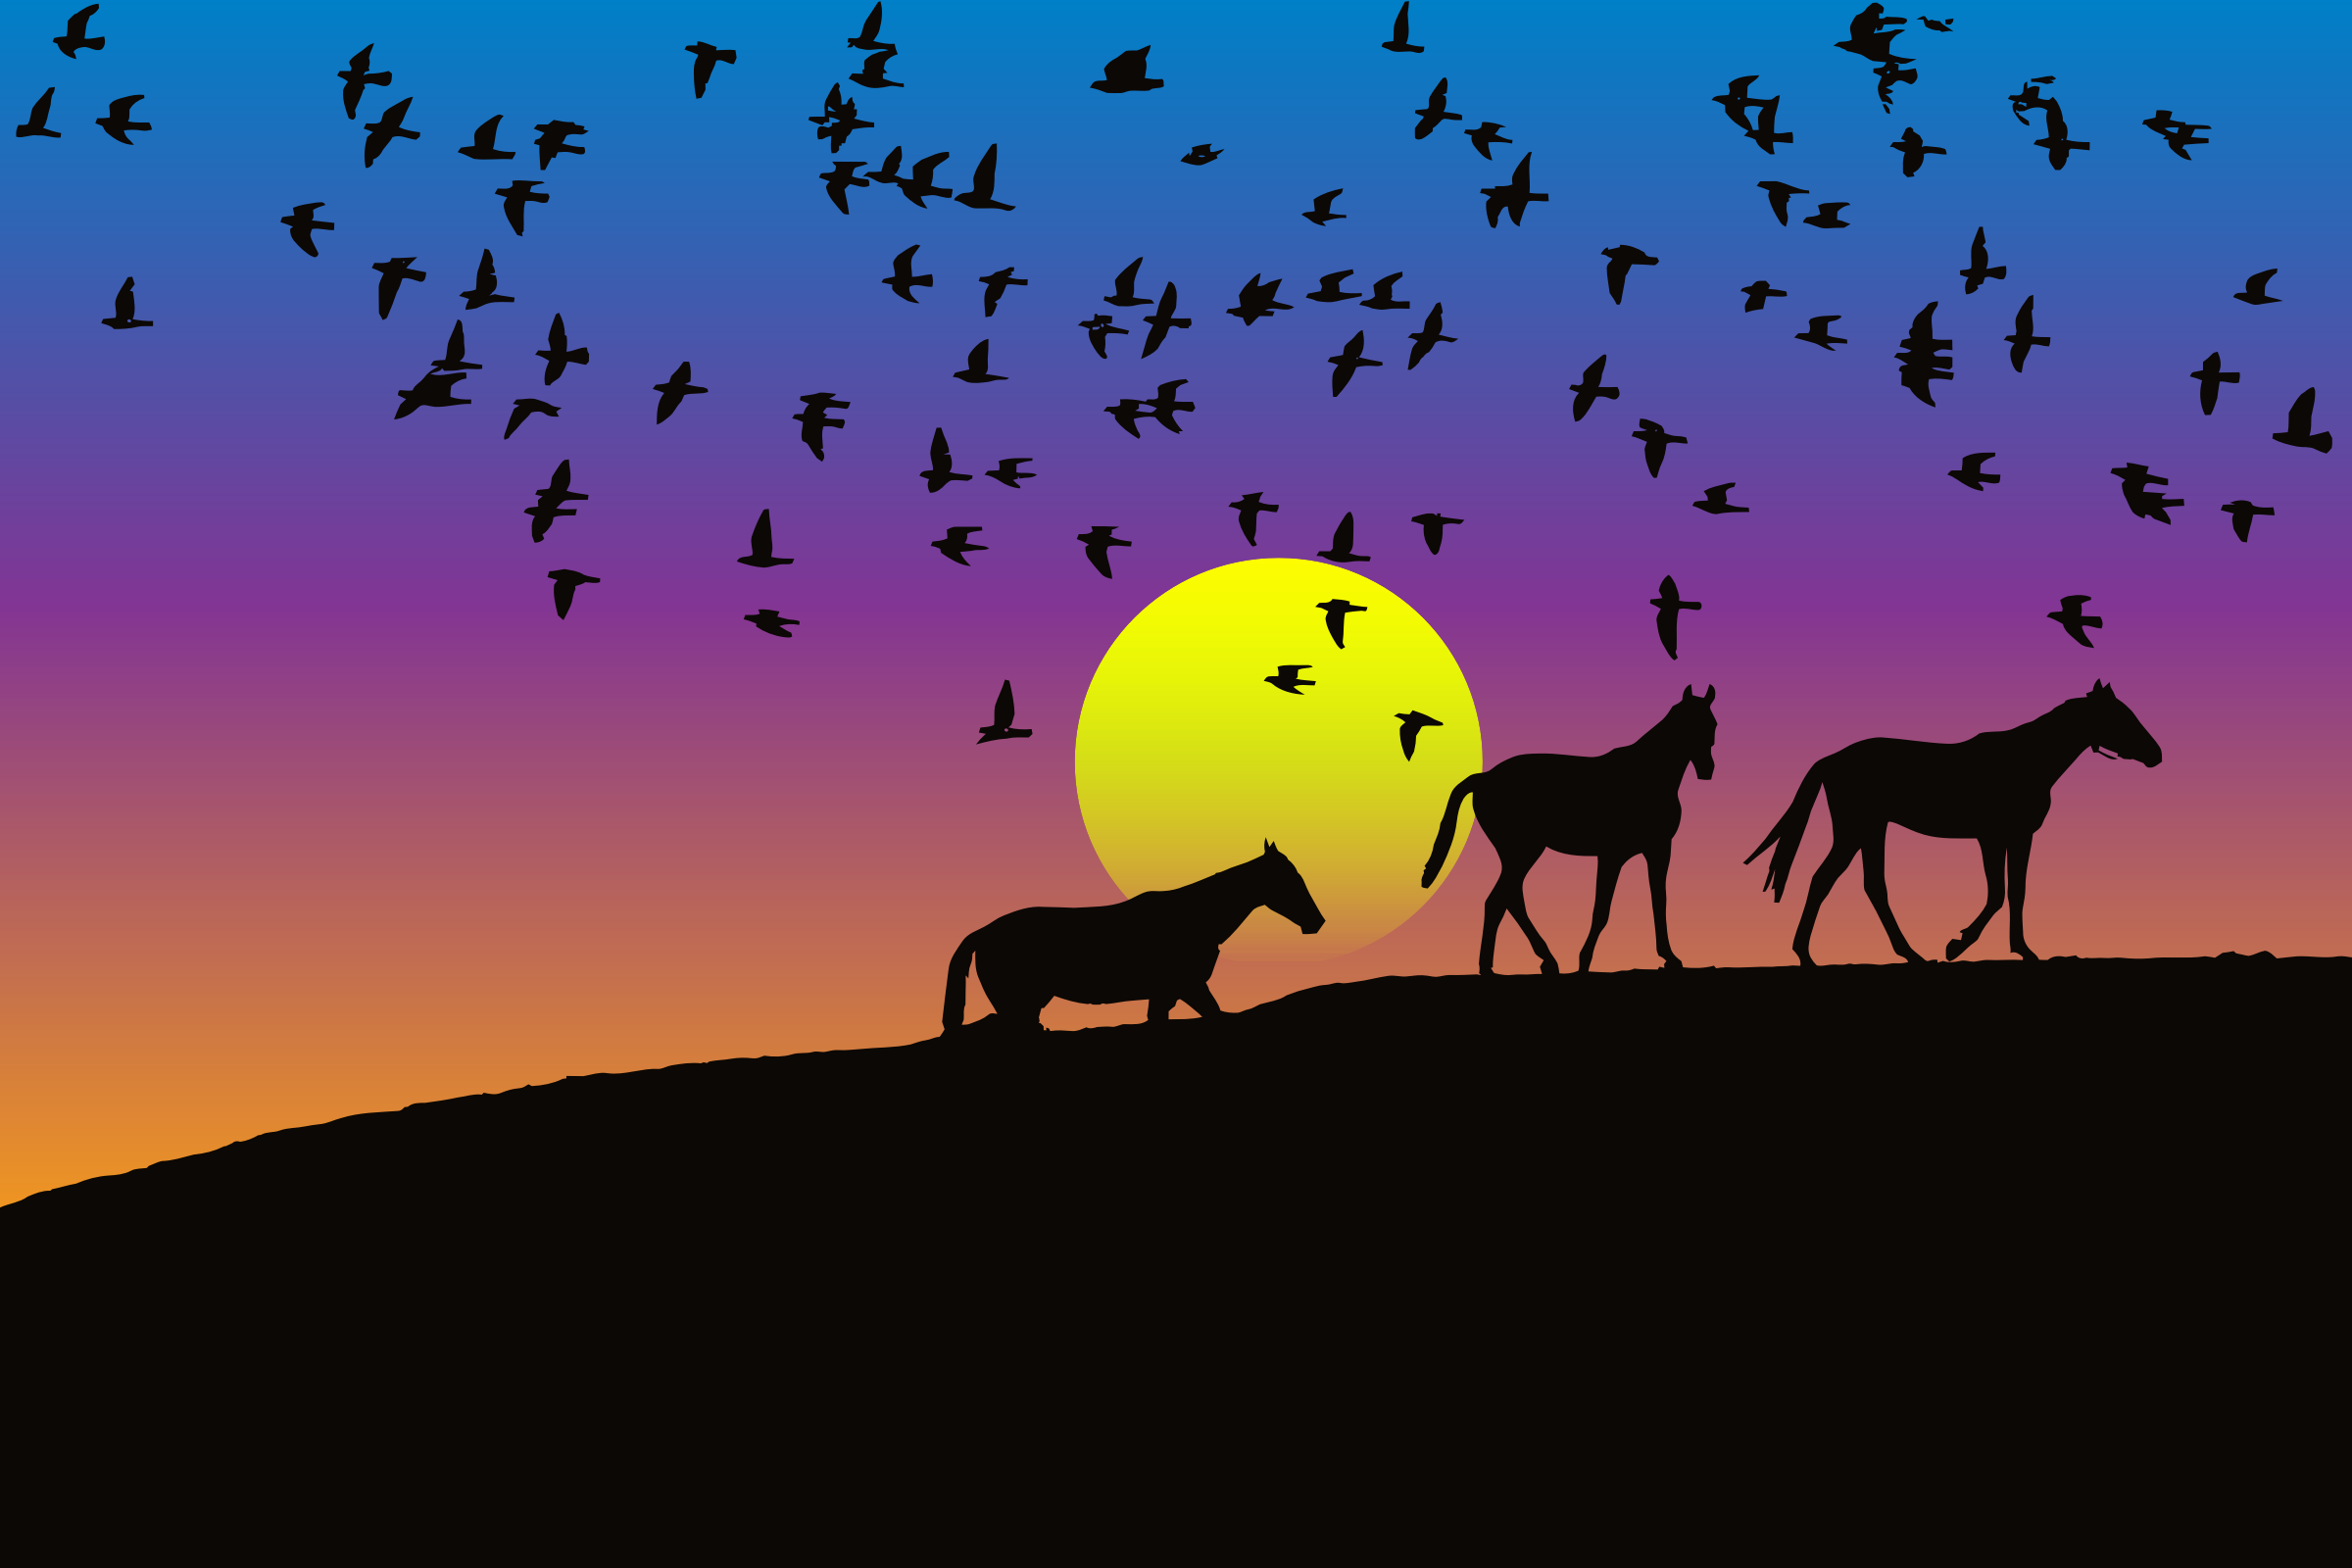 Birds And Horses Silhouette Sunset 2 by GDJ